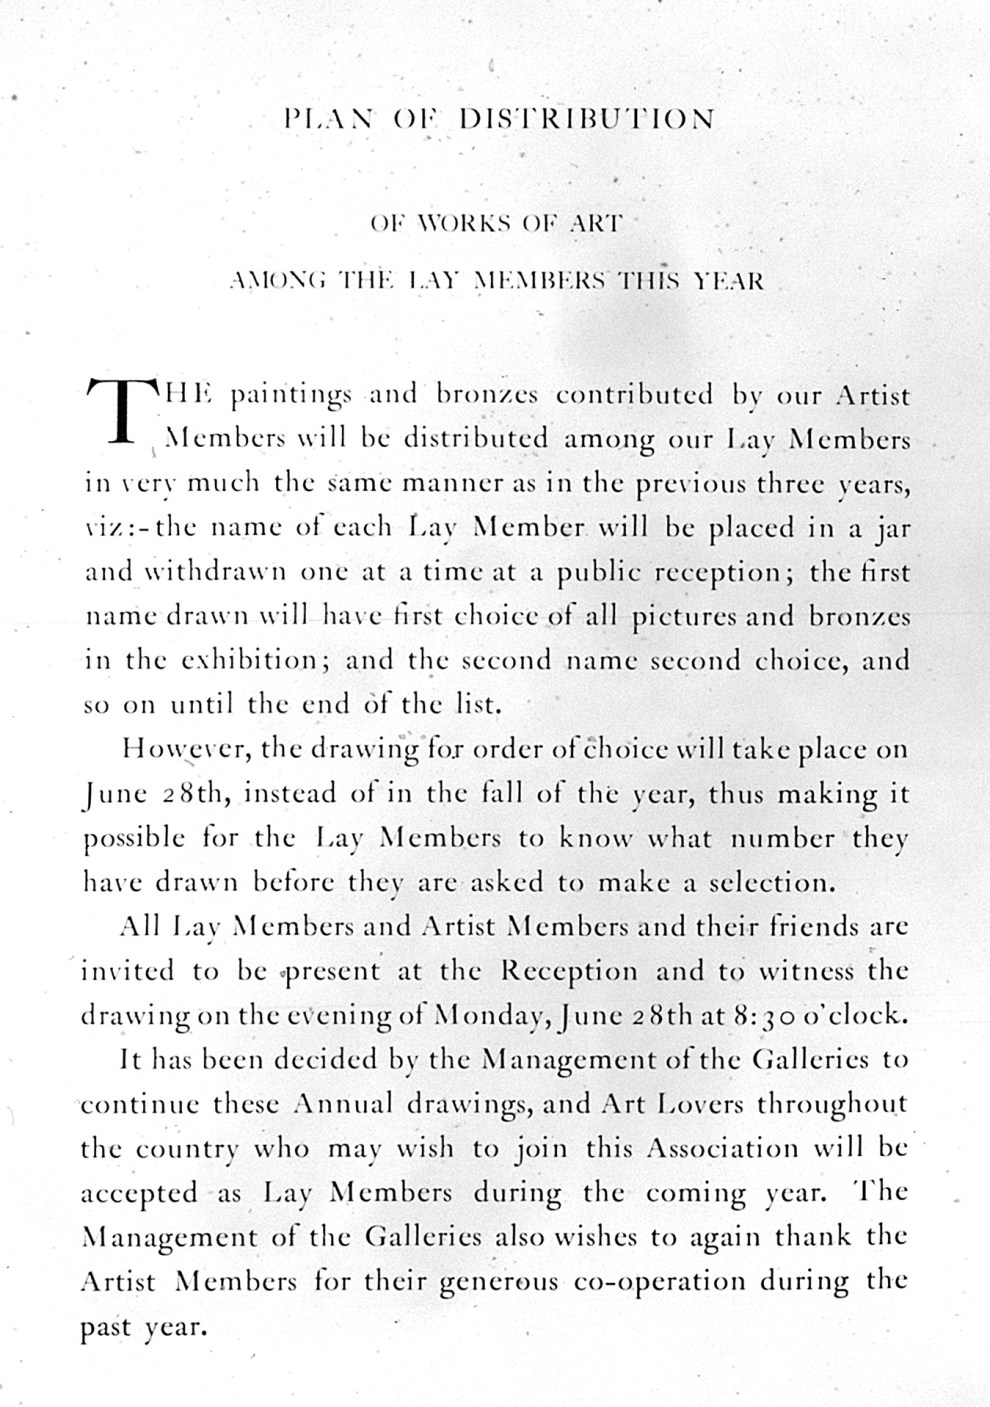 """1926 Grand Central Art Galleries, Inc., New York, NY, """"Exhibition of Paintings and Sculpture Contributed by Artist Members of the Galleries"""", June 28 - September 30"""